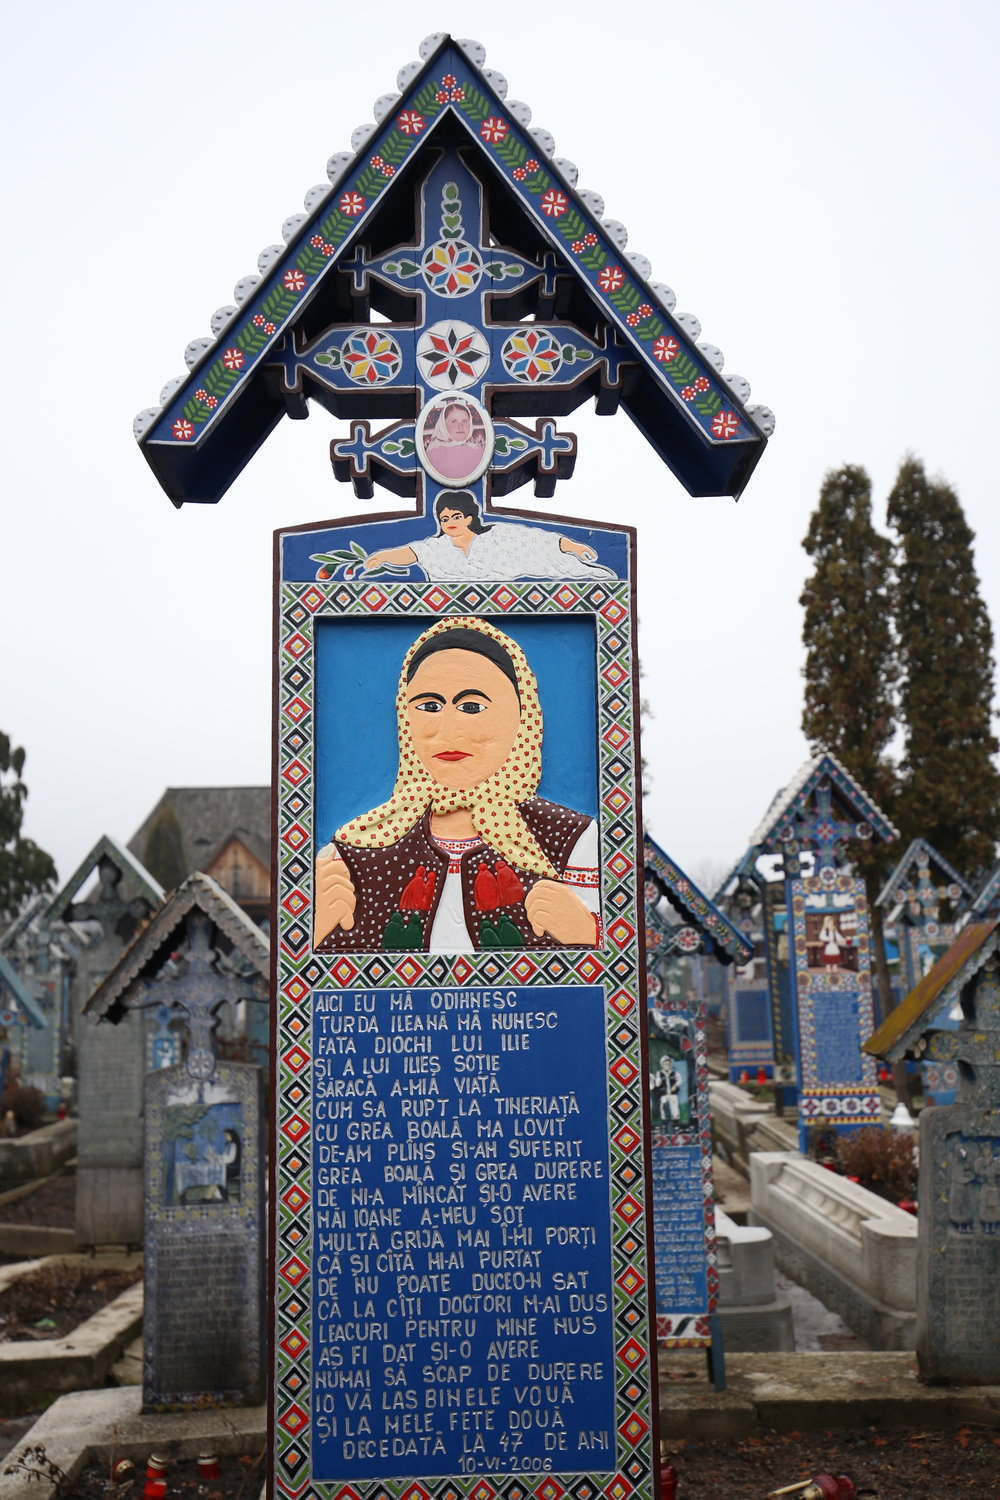 A colourful grave marker in the Merry Cemetery of Sapanta - with a Frida Kahlo esque portrait.